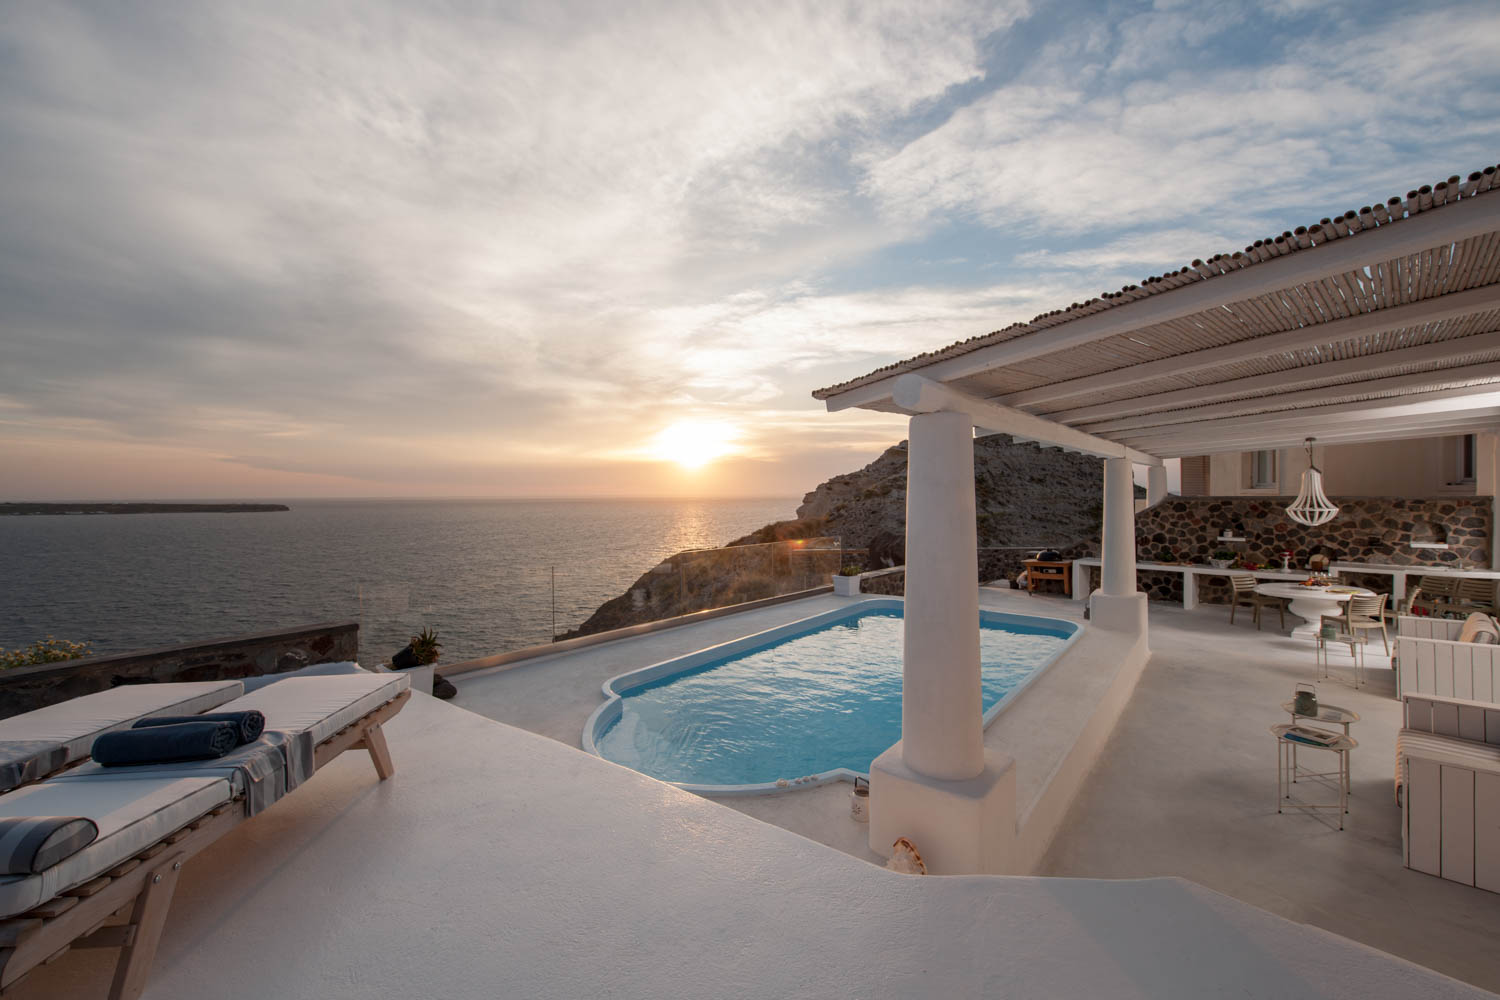 Ode Villa in Oia of Santorini Sunbeds beside Pool